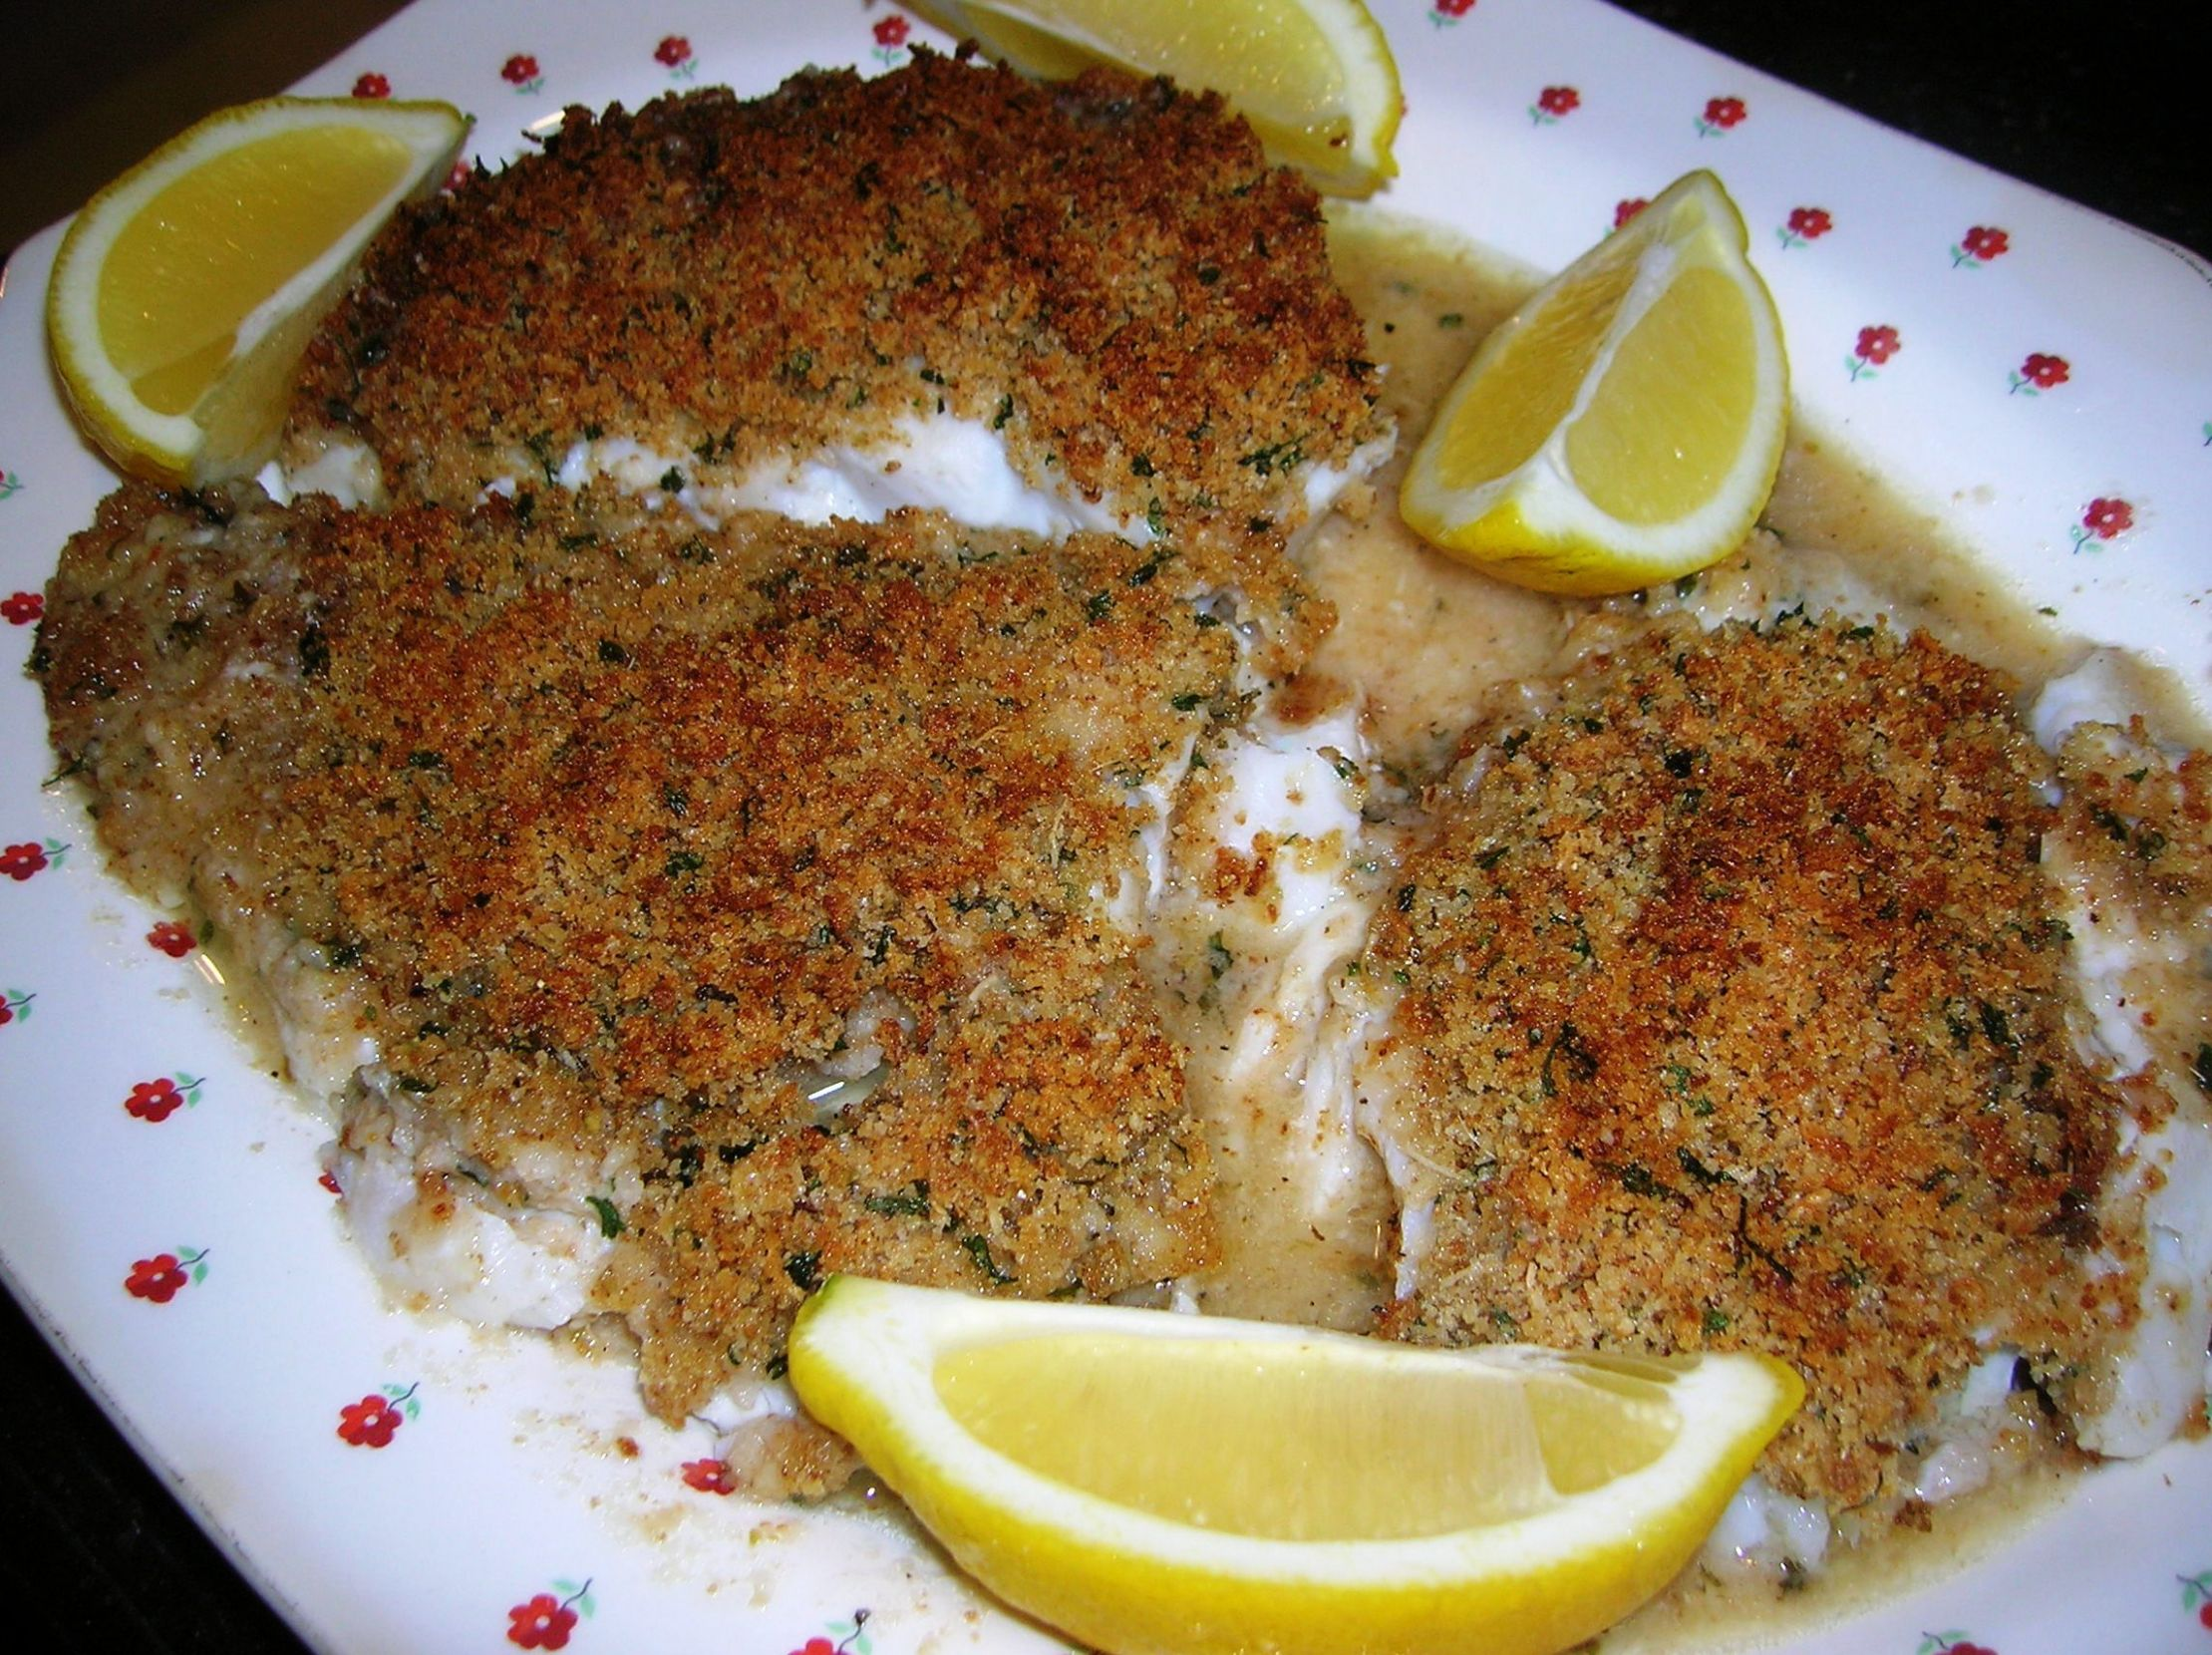 Fillet of Fish Oreganata (With images) | Easy fish recipes, Fish ...